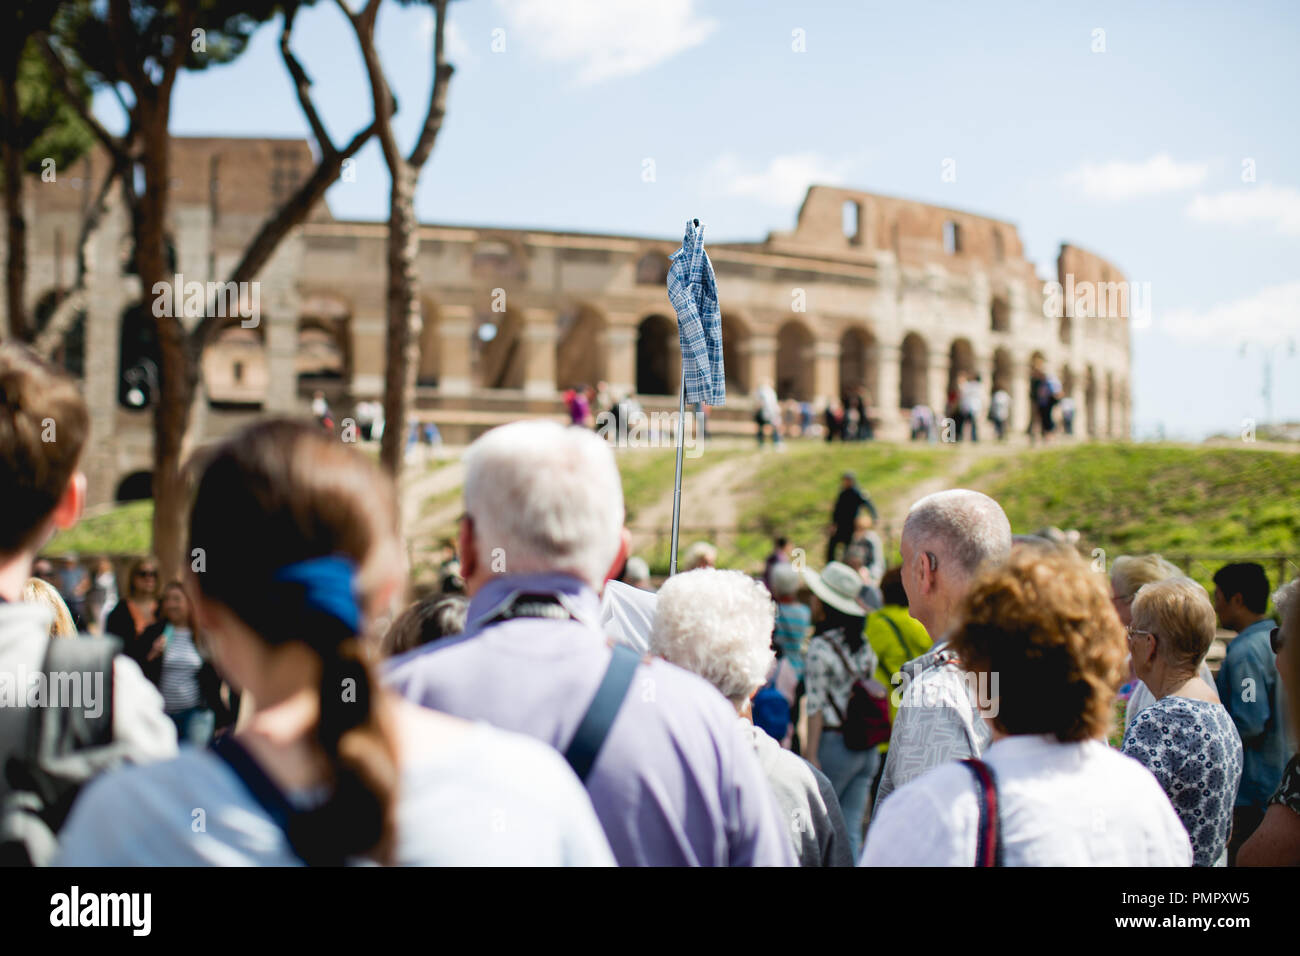 A group of tourists lead by a tour guide in front of the Colosseum / Coliseum in Rome - Stock Image